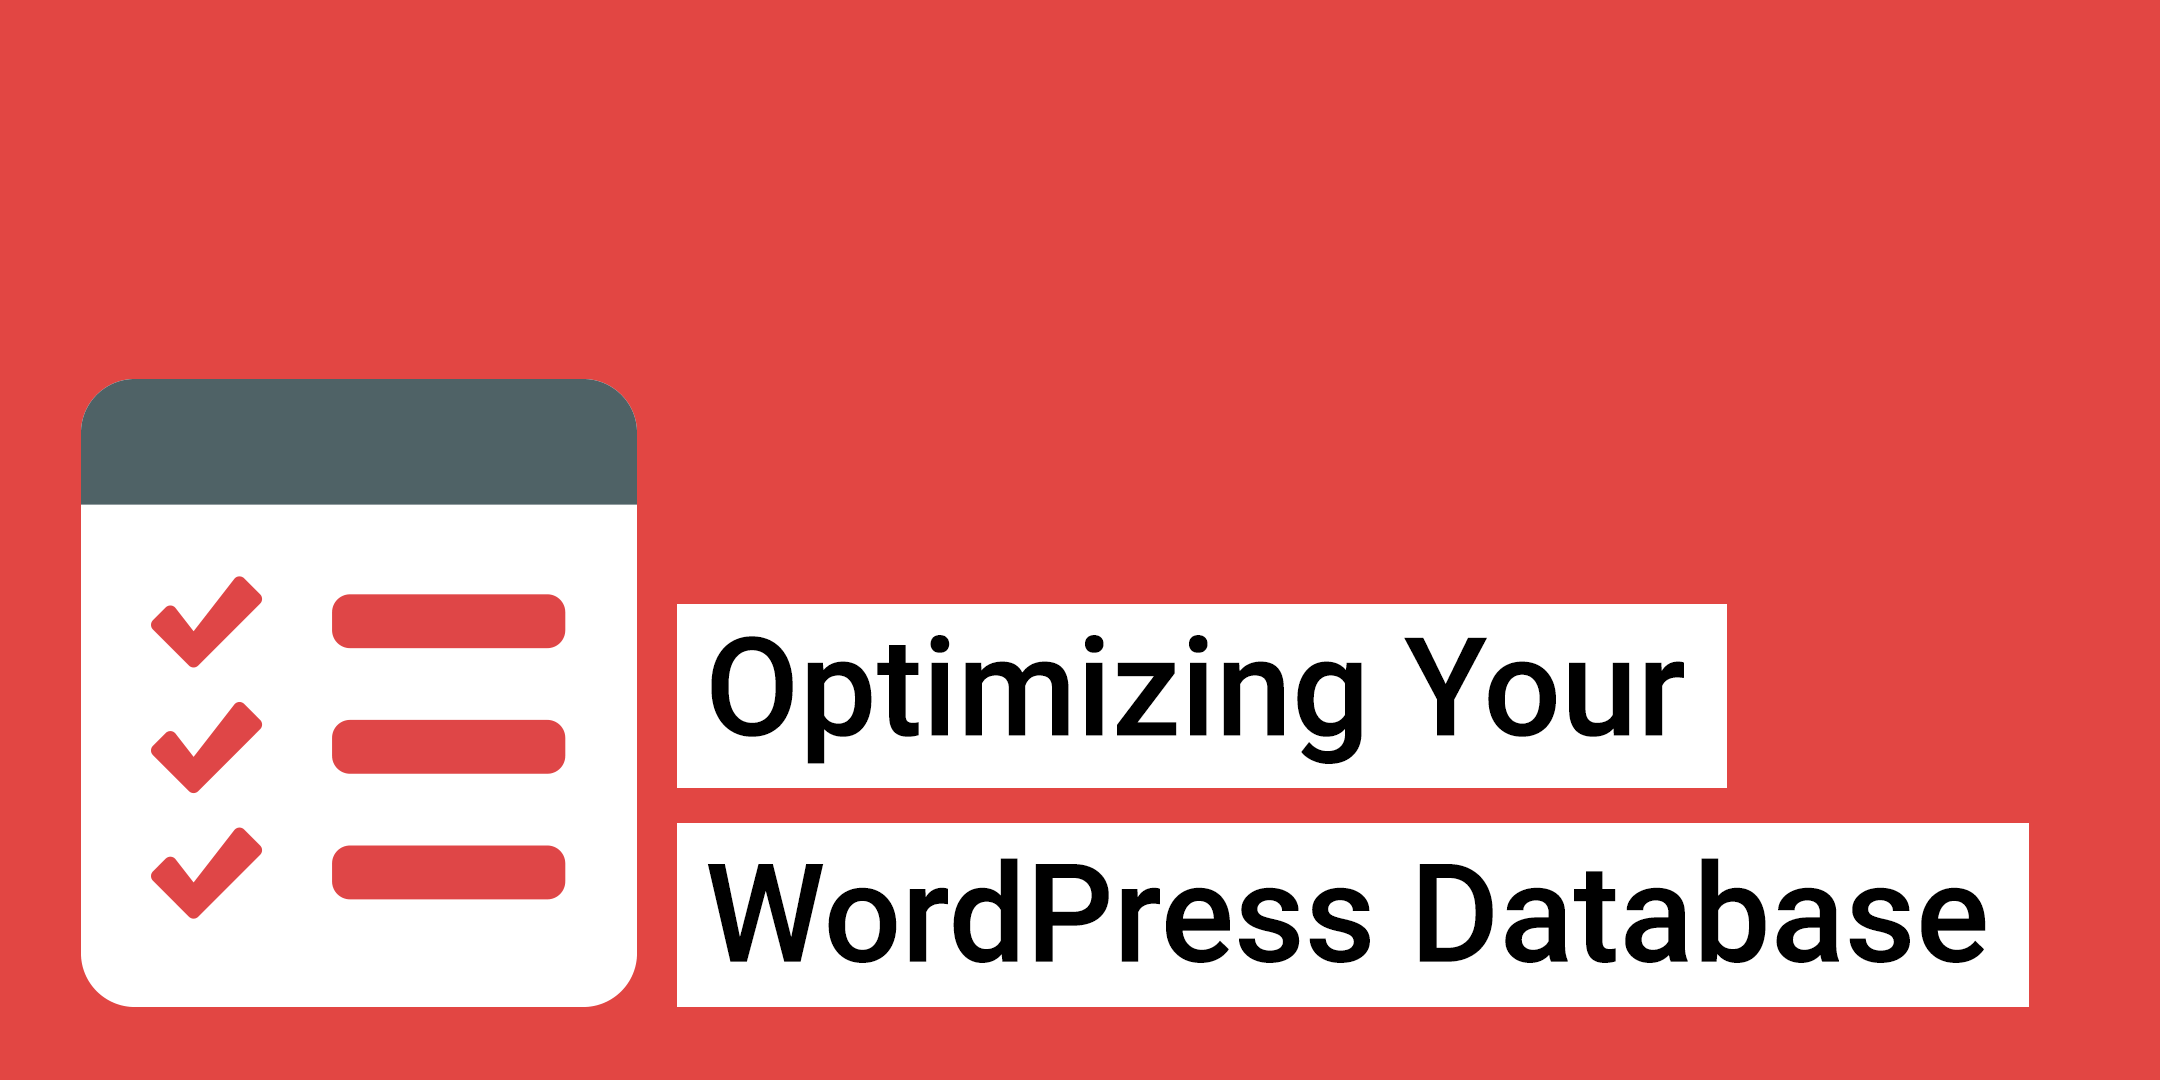 Optimizing Your WordPress Database